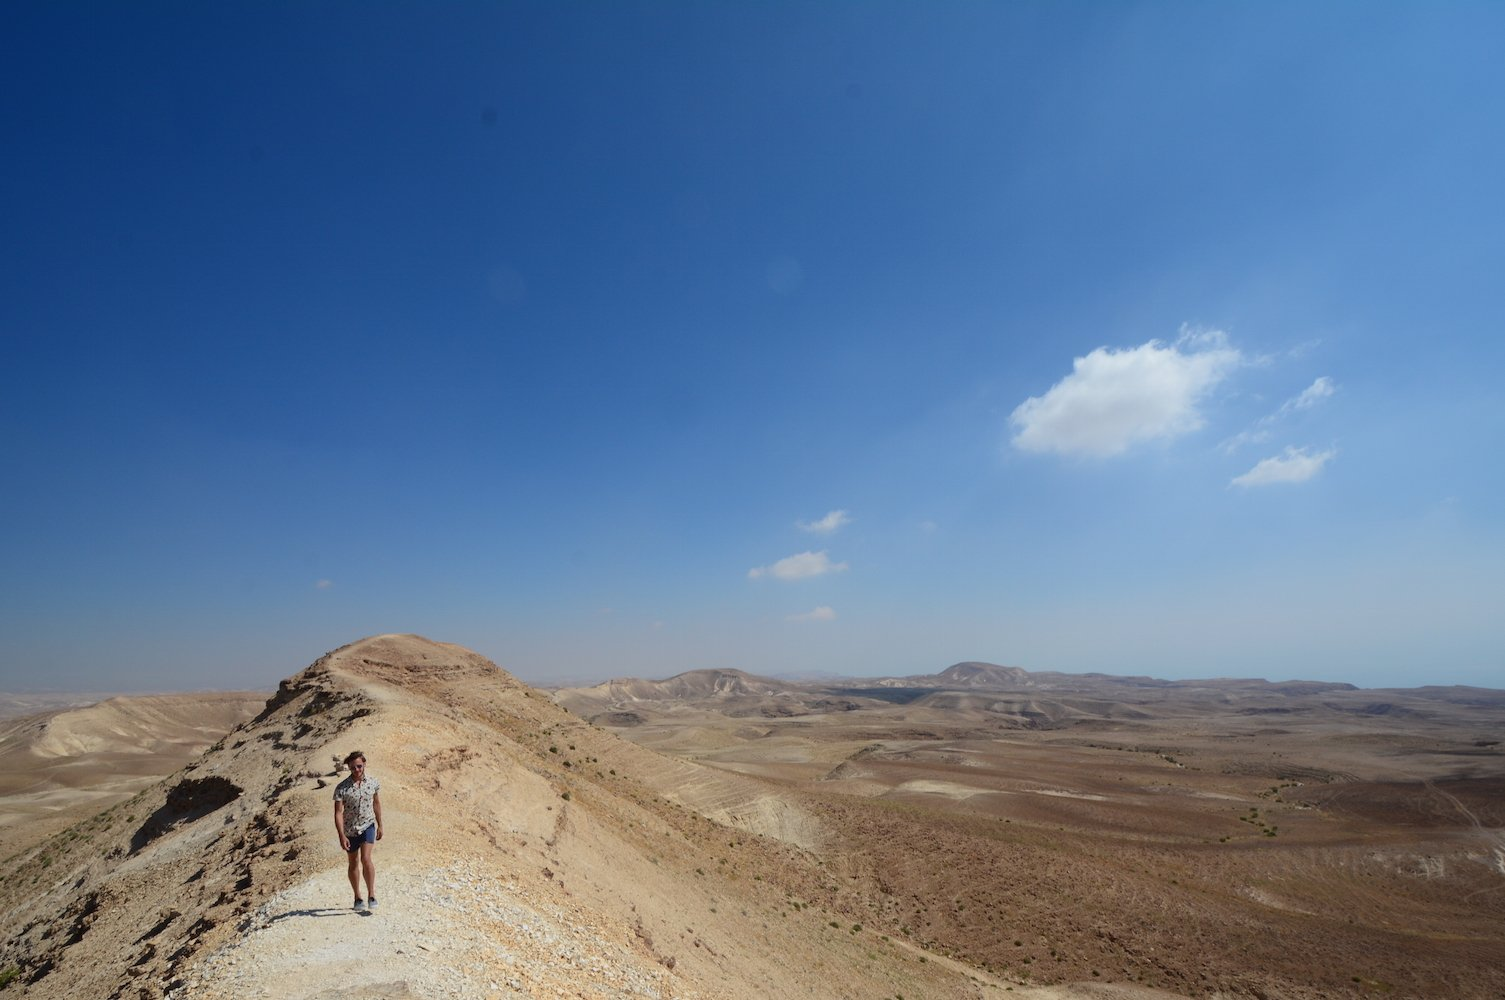 Hiking on a mountain drive at Judean desert Beautiful Israel